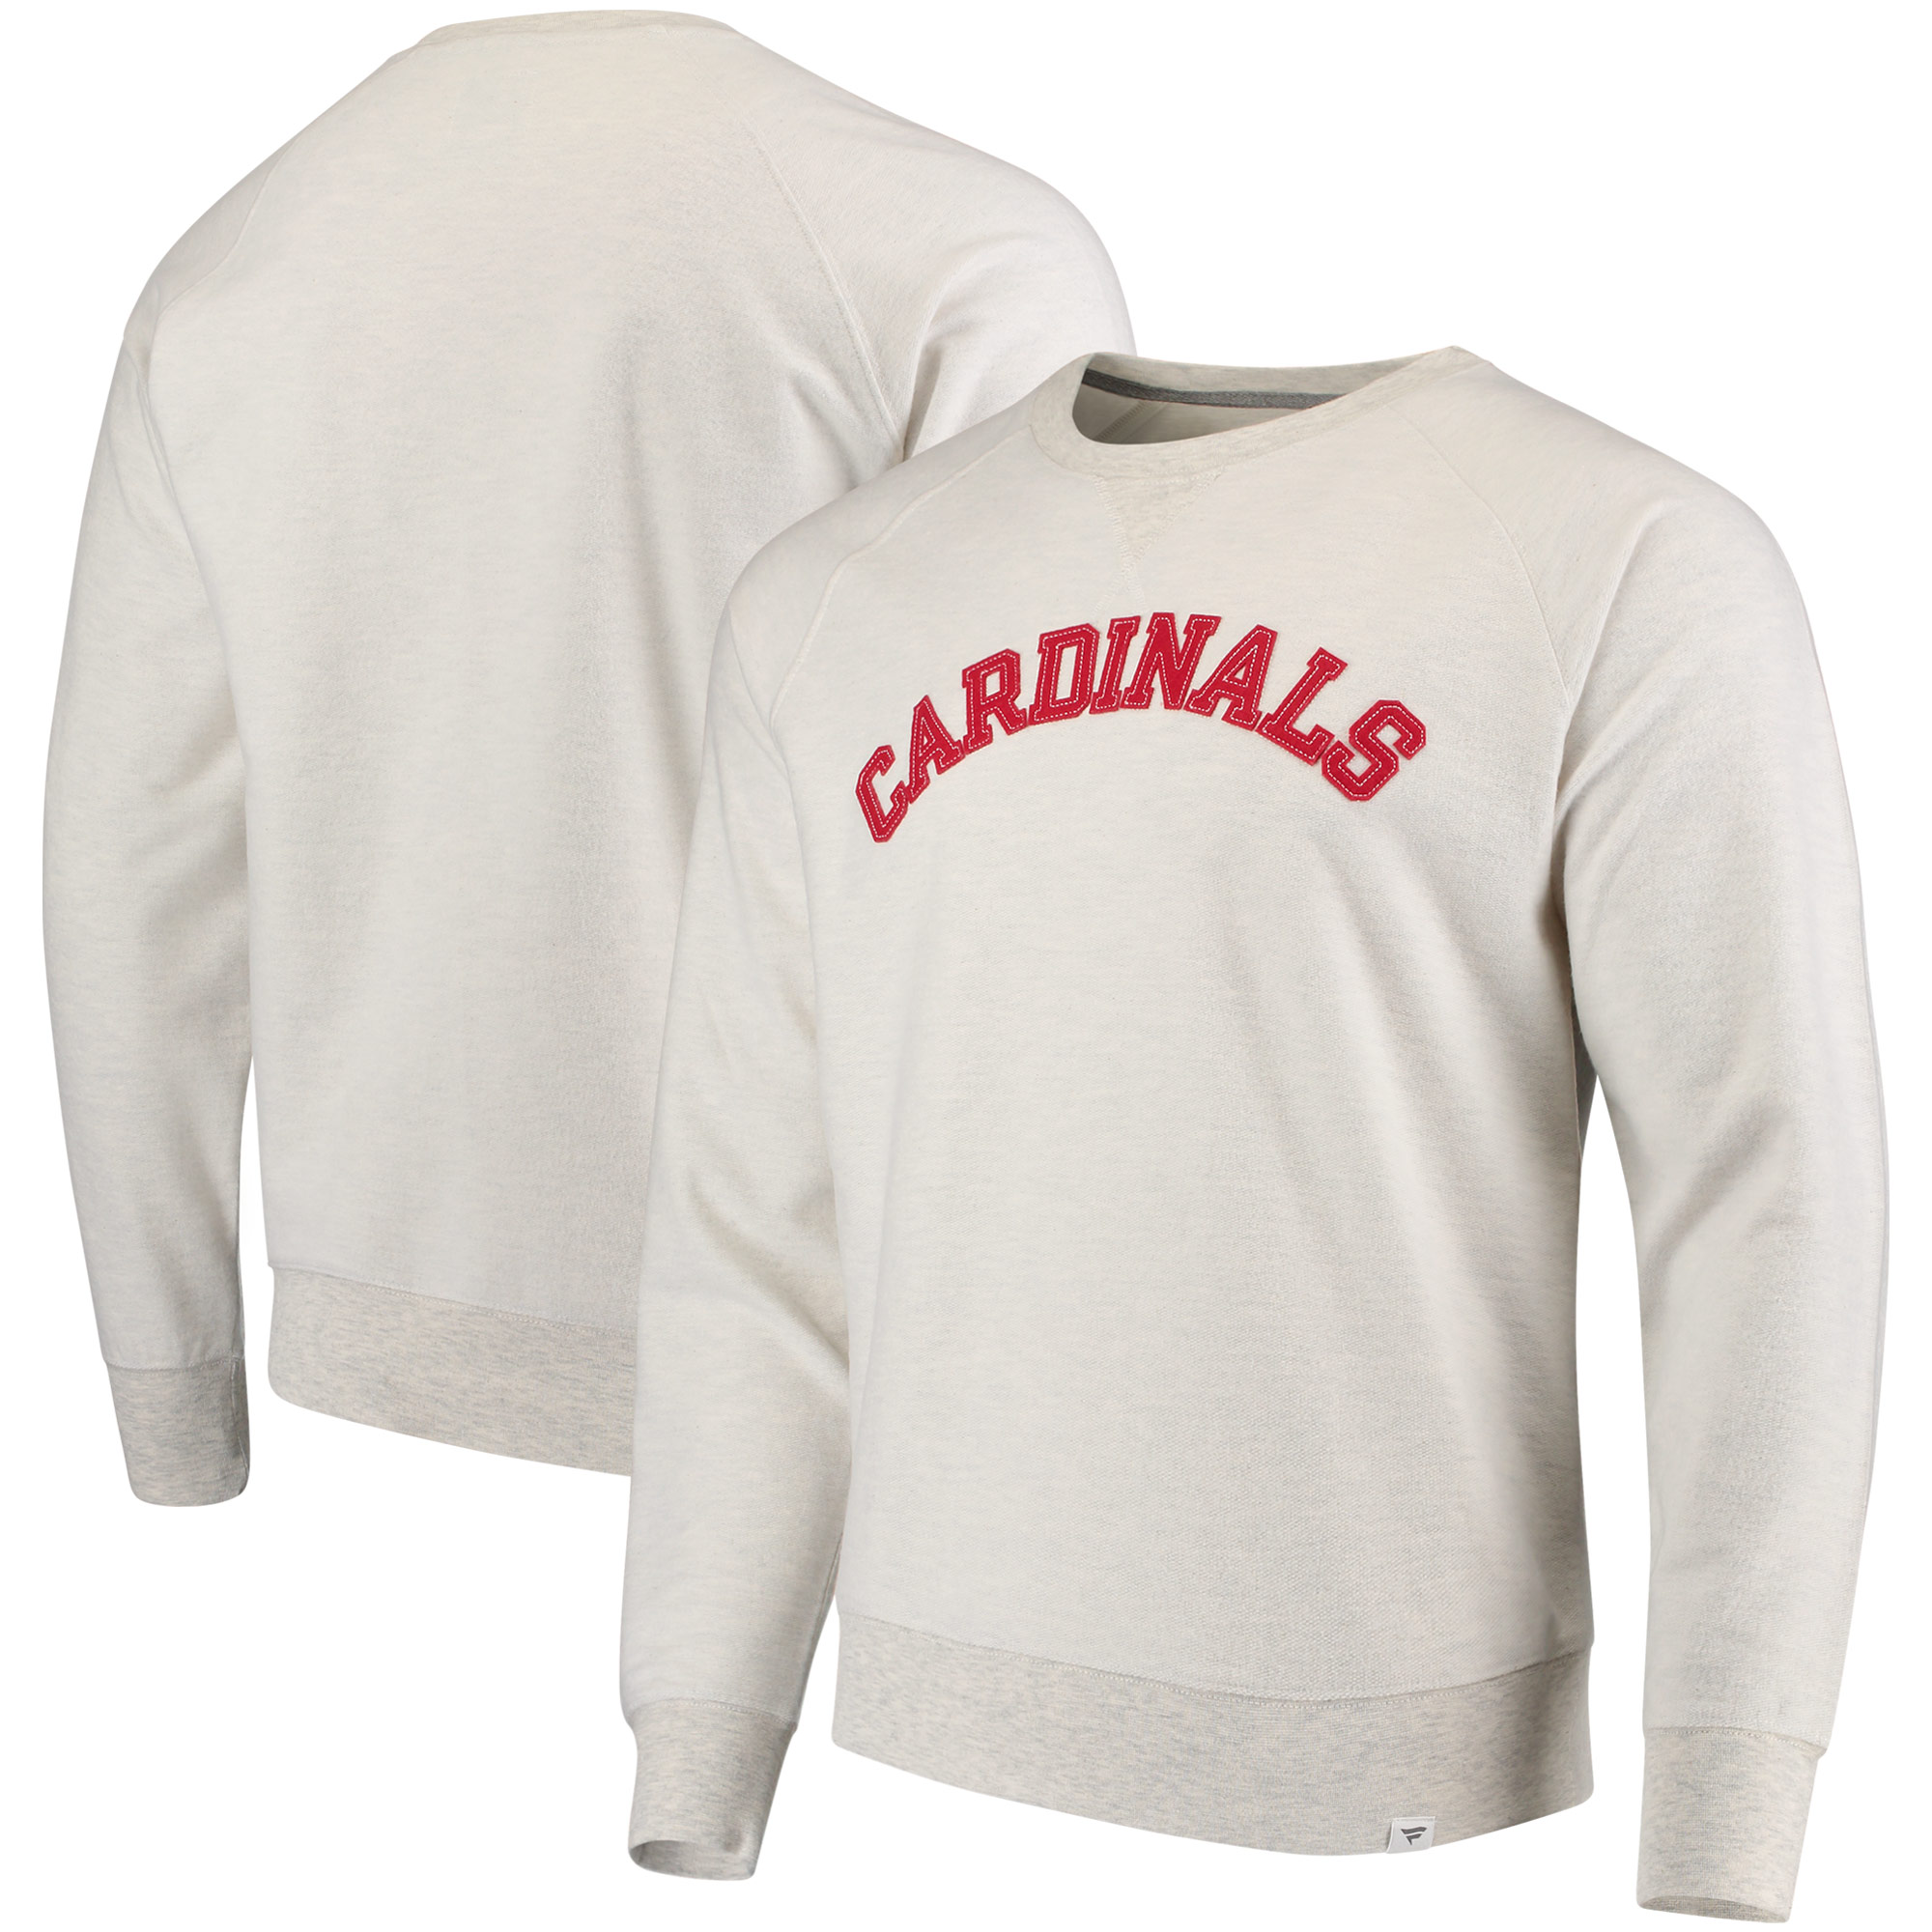 St. Louis Cardinals Fanatics Branded True Classics French Terry Pullover Sweatshirt - Cream